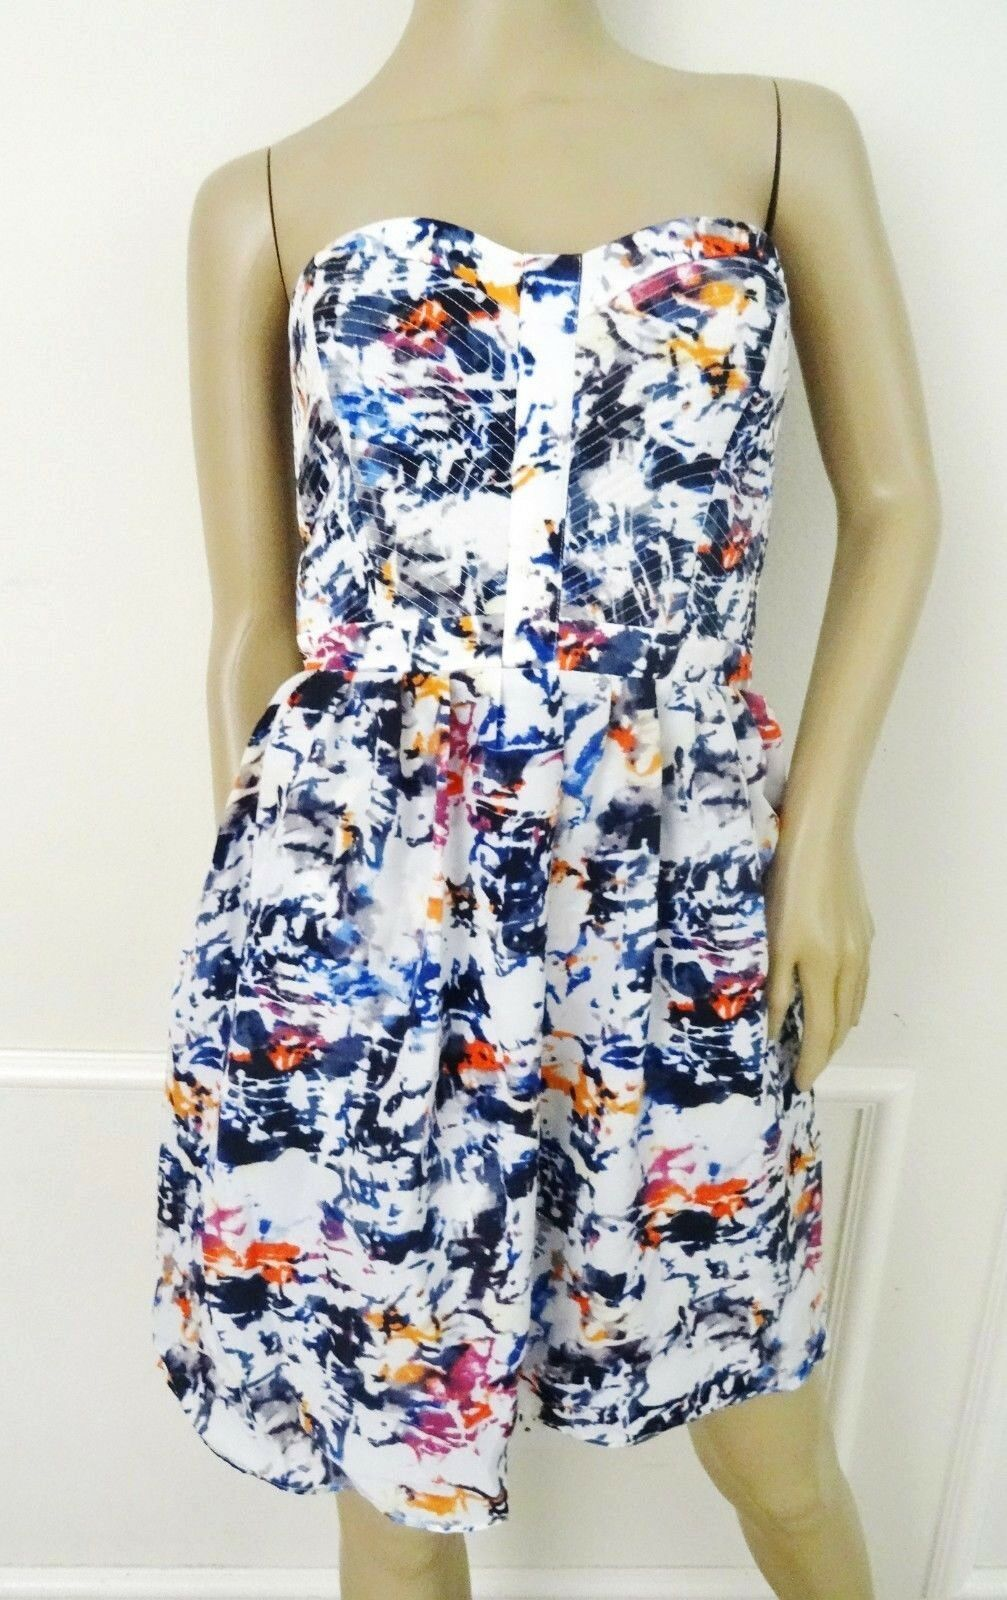 Nwt Parker Lily Silky Party Fit Flare Dress Sz M Medium Pollock Weiß Print